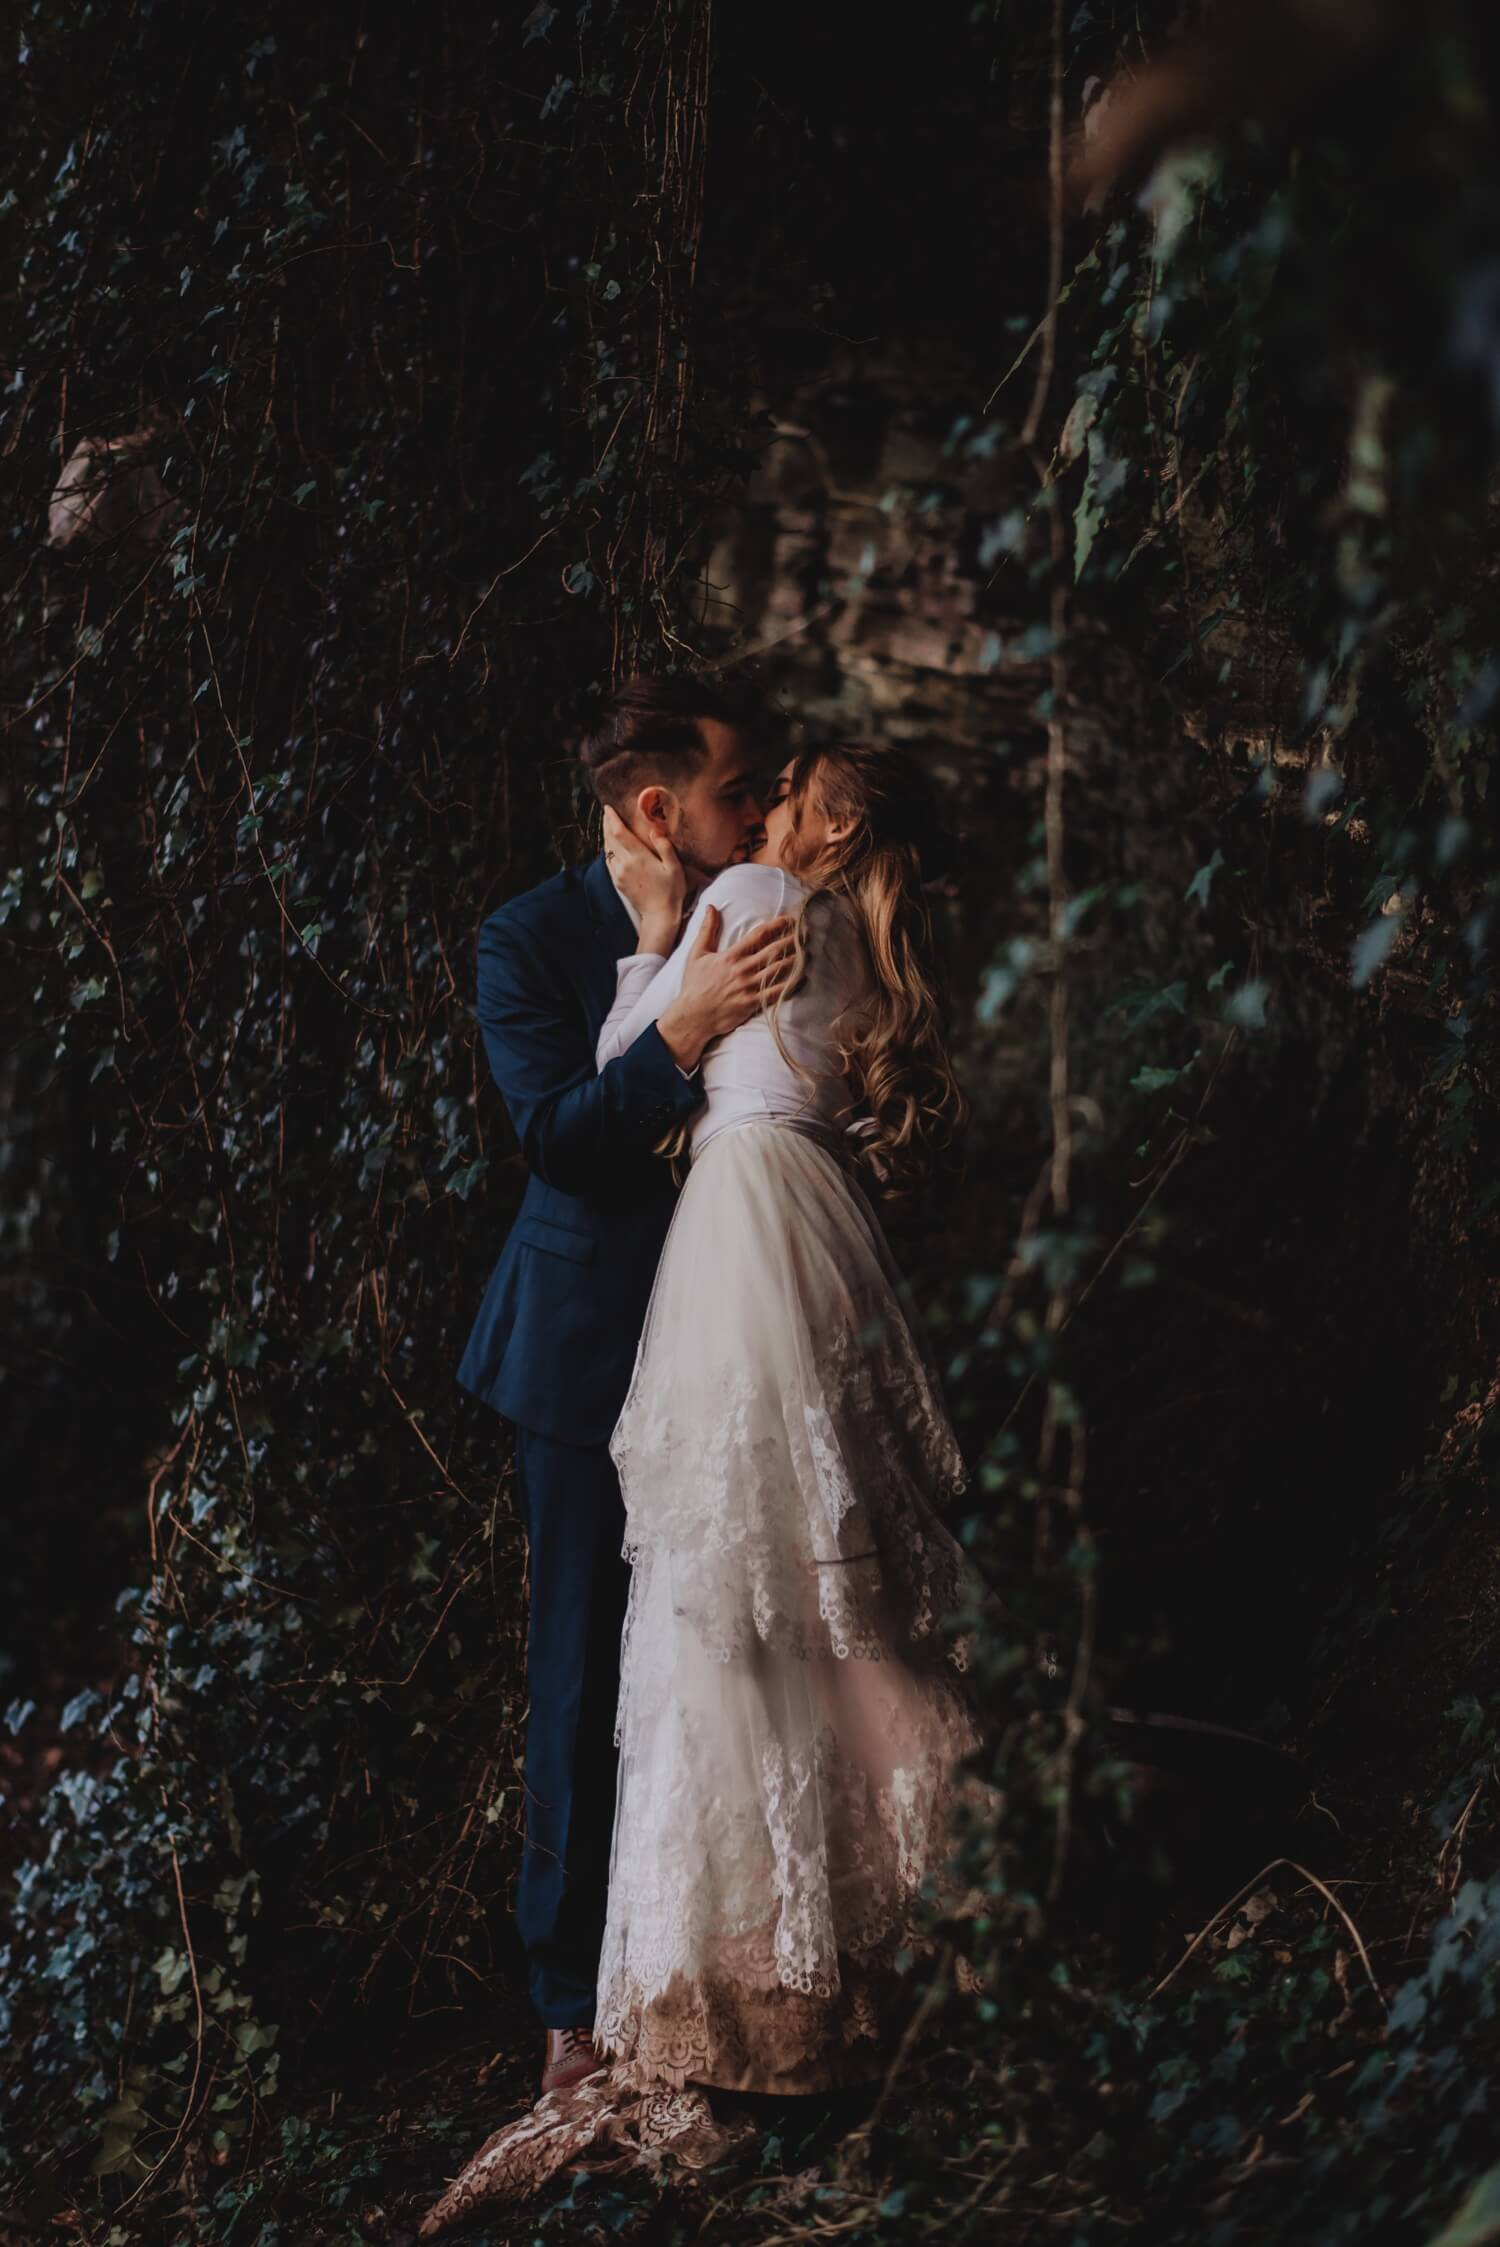 Dean village, forest, elopement, Bride and groom Wedding Photographer in Edinburgh - The Adamkovi